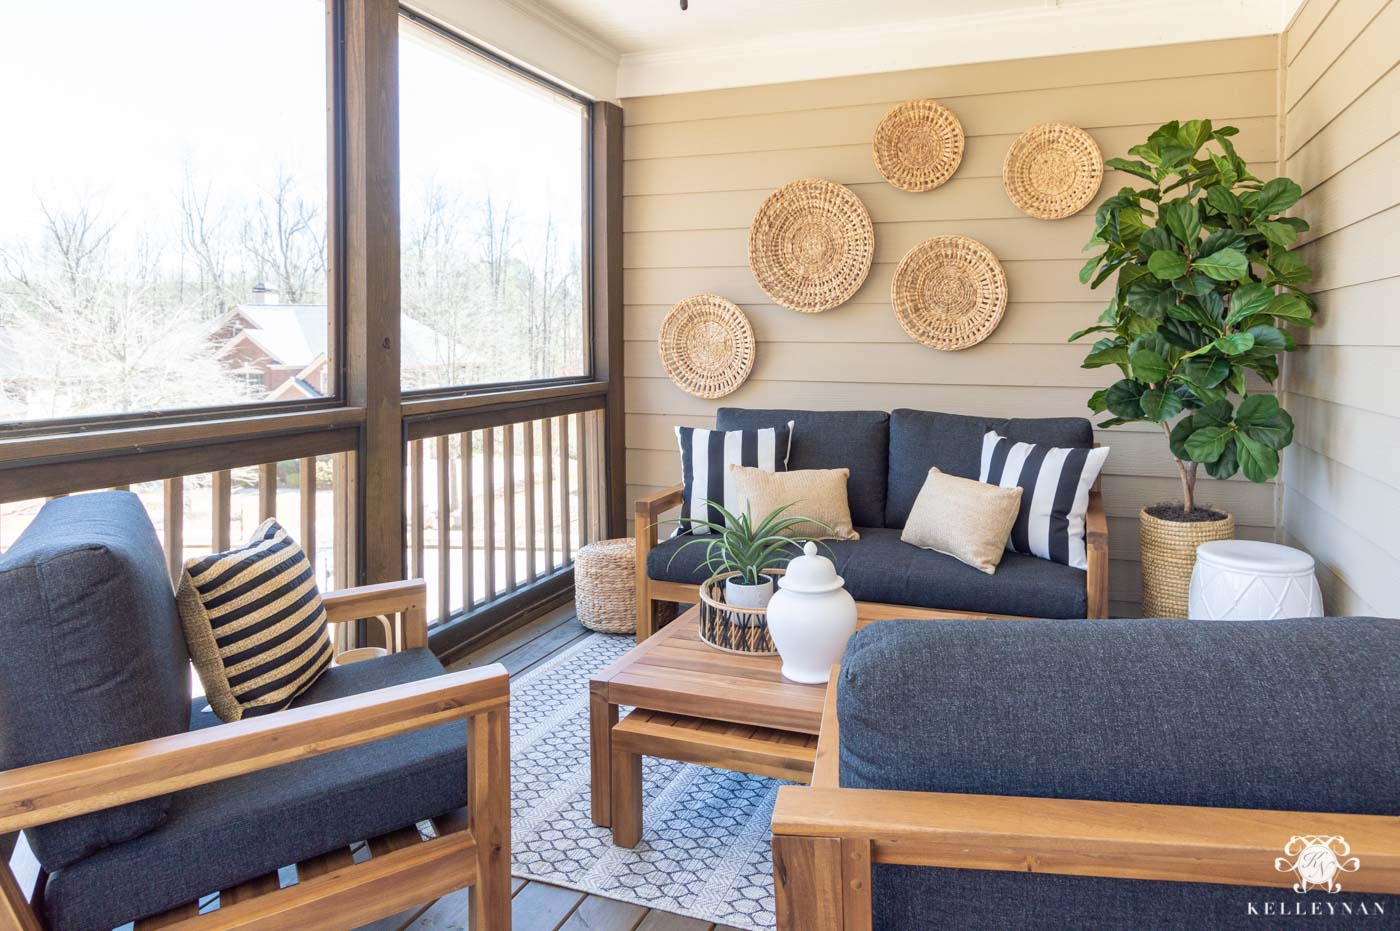 How to Make a Screened In Porch Cozy with Outdoor Decor